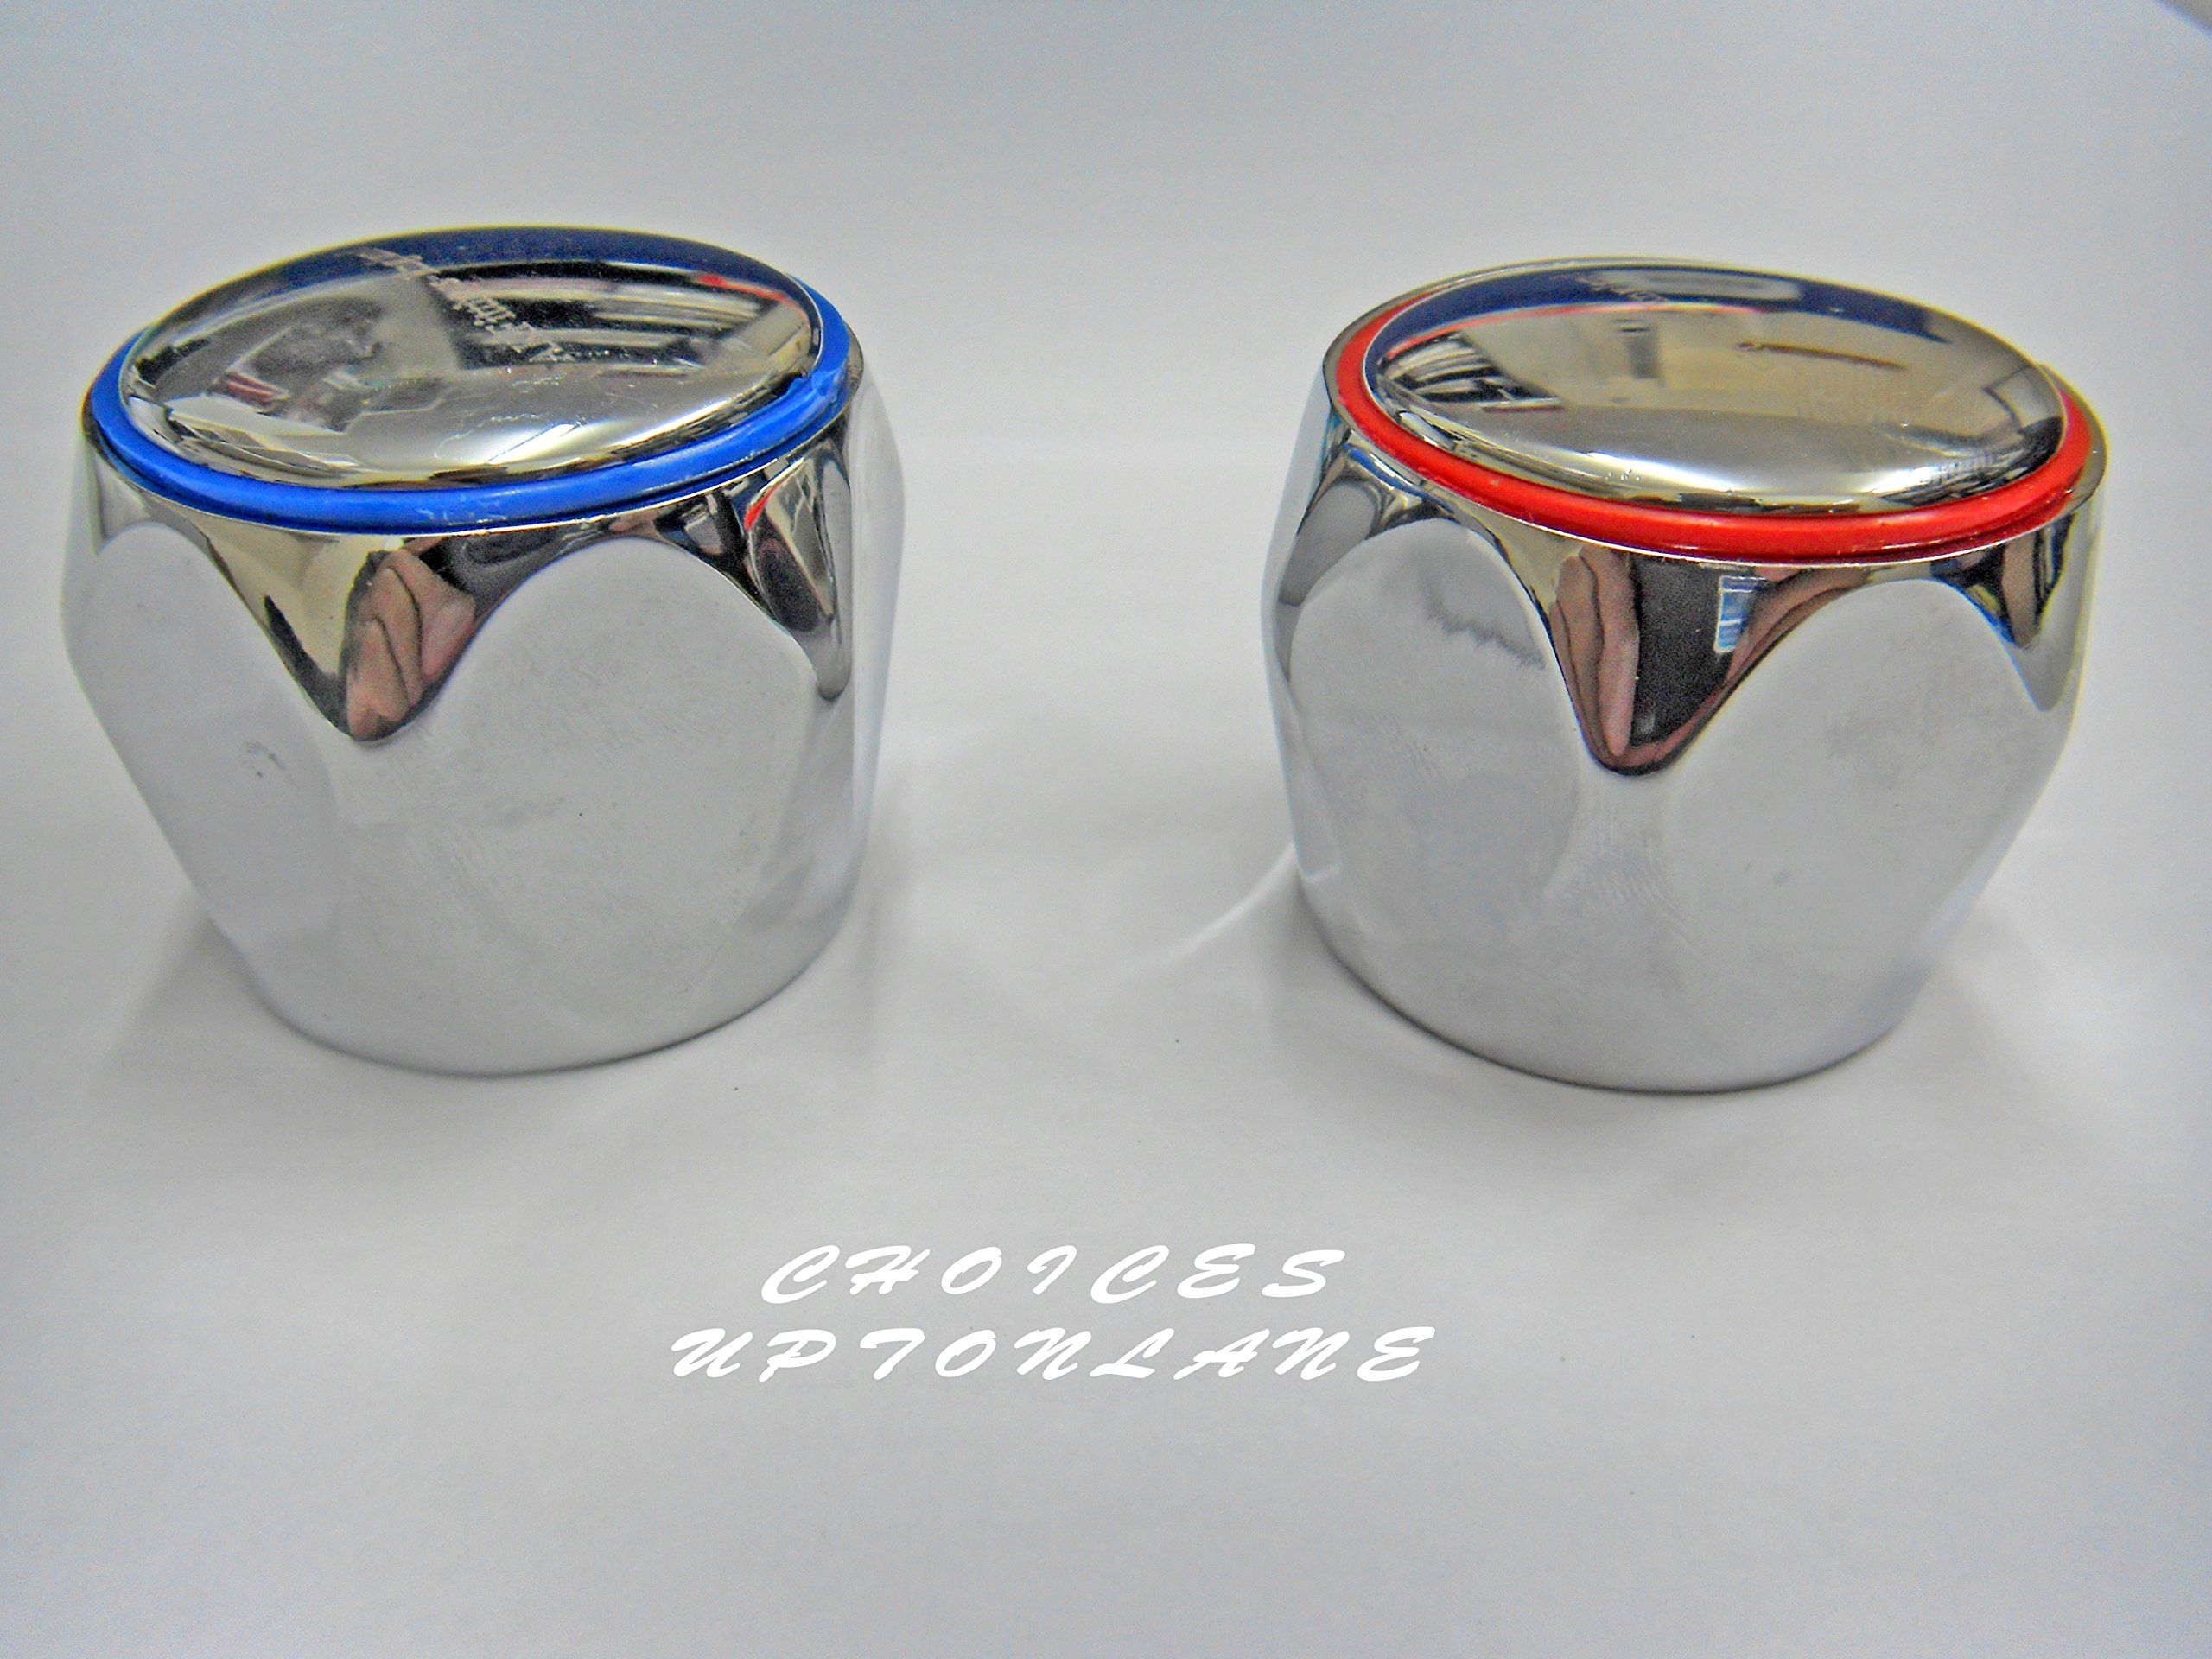 REPLACEMENT HOT & COLD TAP TOP HEAD COVERS CHROME PLATED FOR BASIN / BATH & KITCHEN SINK TAPS